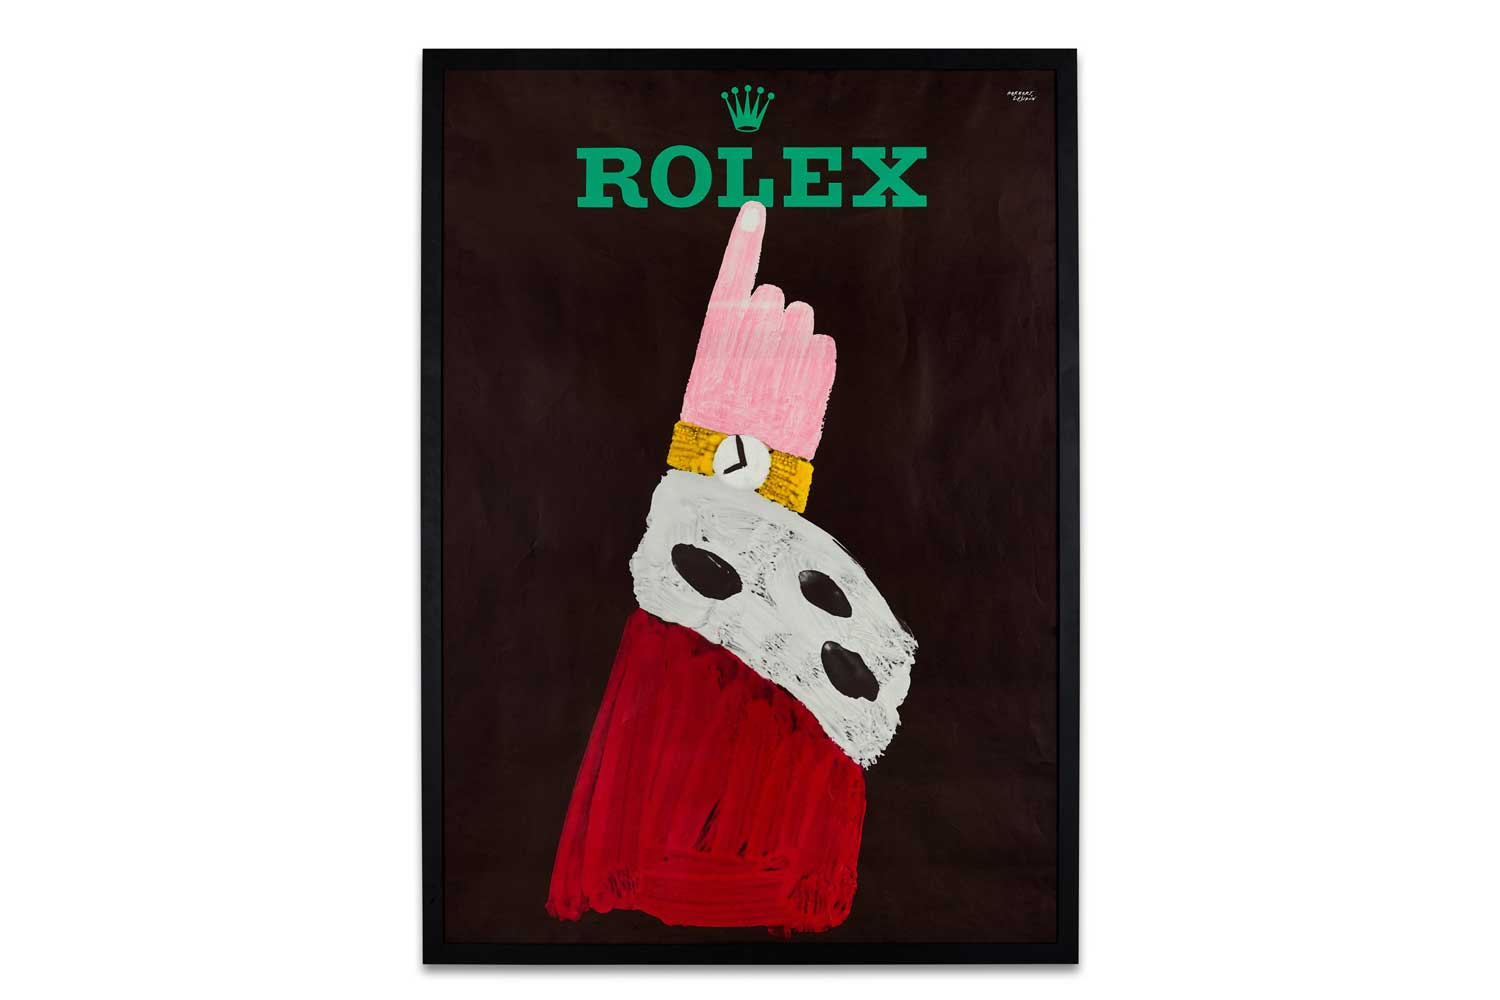 Lot 8142: Rolex and Herbert Leupin - A large advertising poster printed by Wolfsbergdruck, Zurich, circa 1959